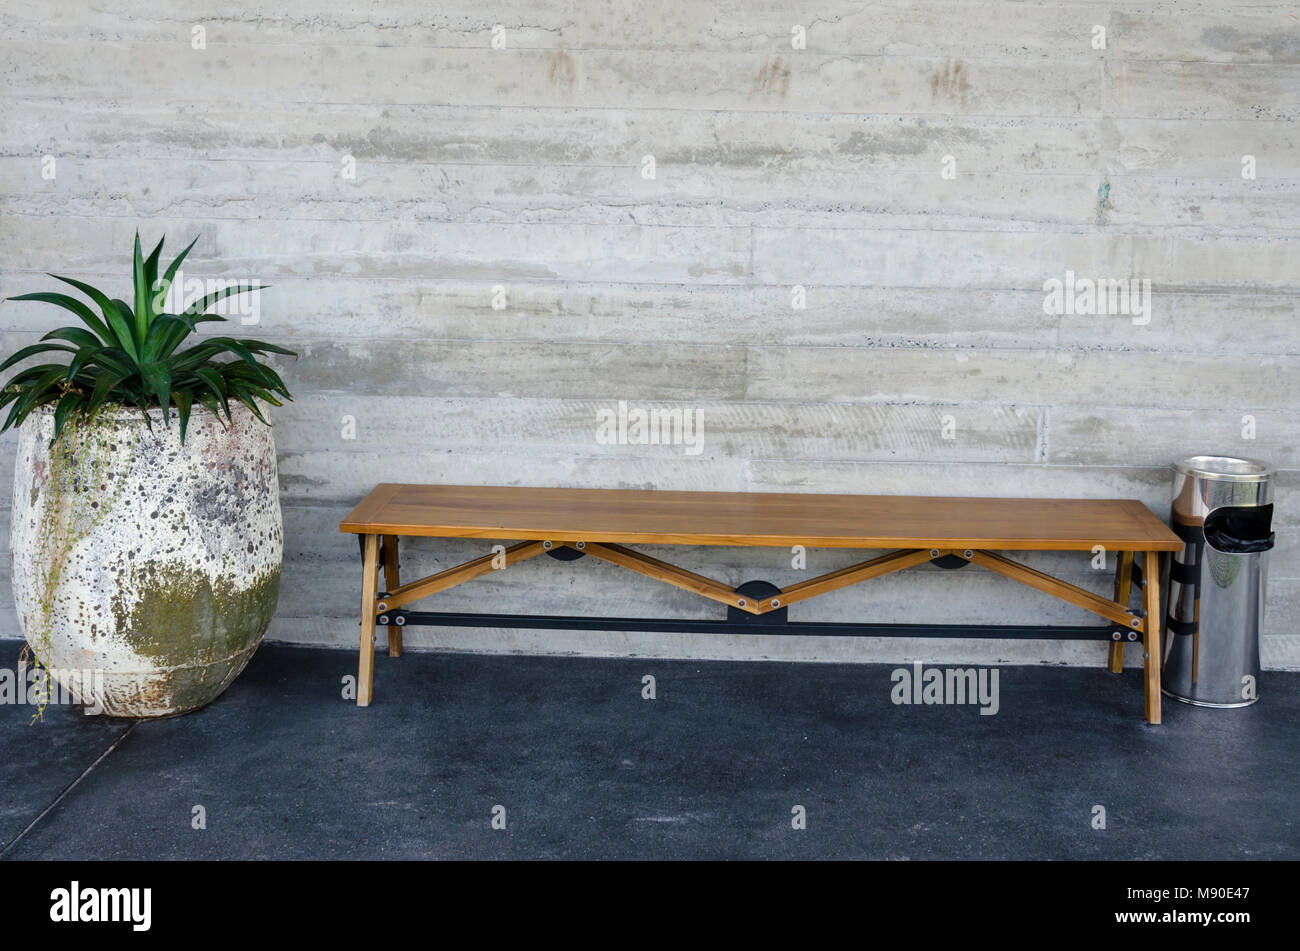 Phenomenal Chairs Wooden Benches And Potted Plants And Trash Caraccident5 Cool Chair Designs And Ideas Caraccident5Info